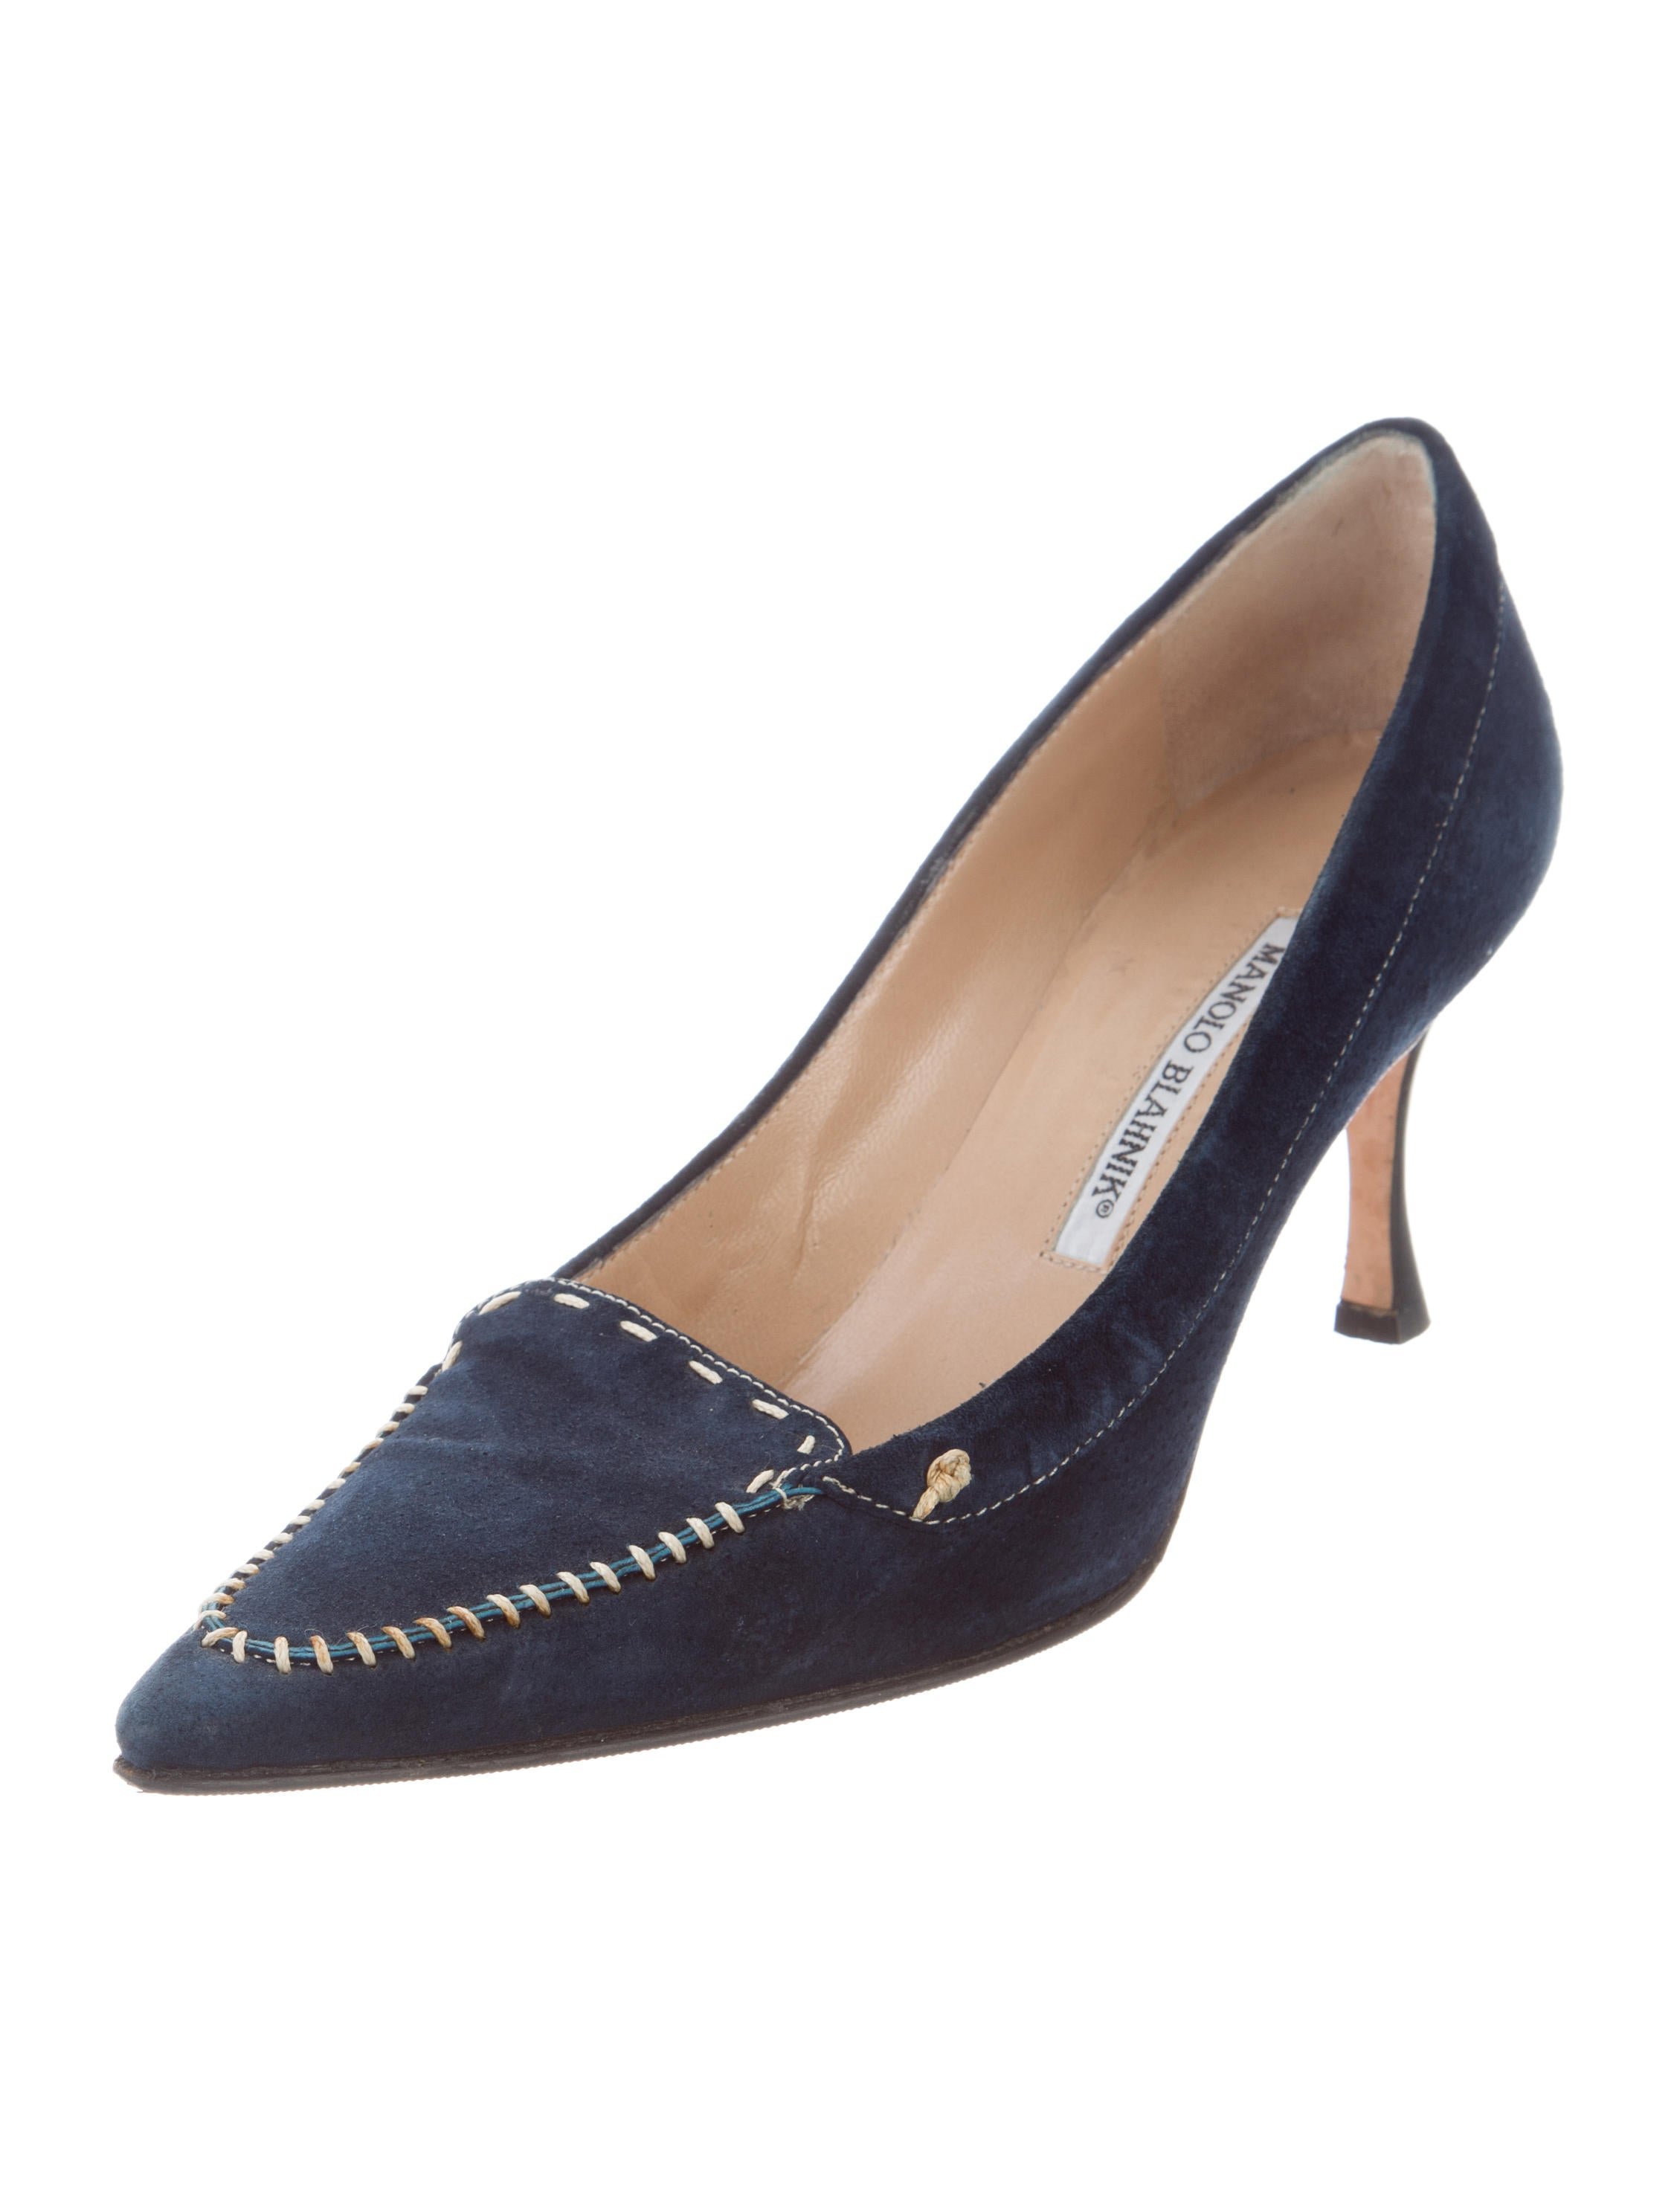 Manolo blahnik pointed toe pumps shoes moo71578 the for Shoes by manolo blahnik